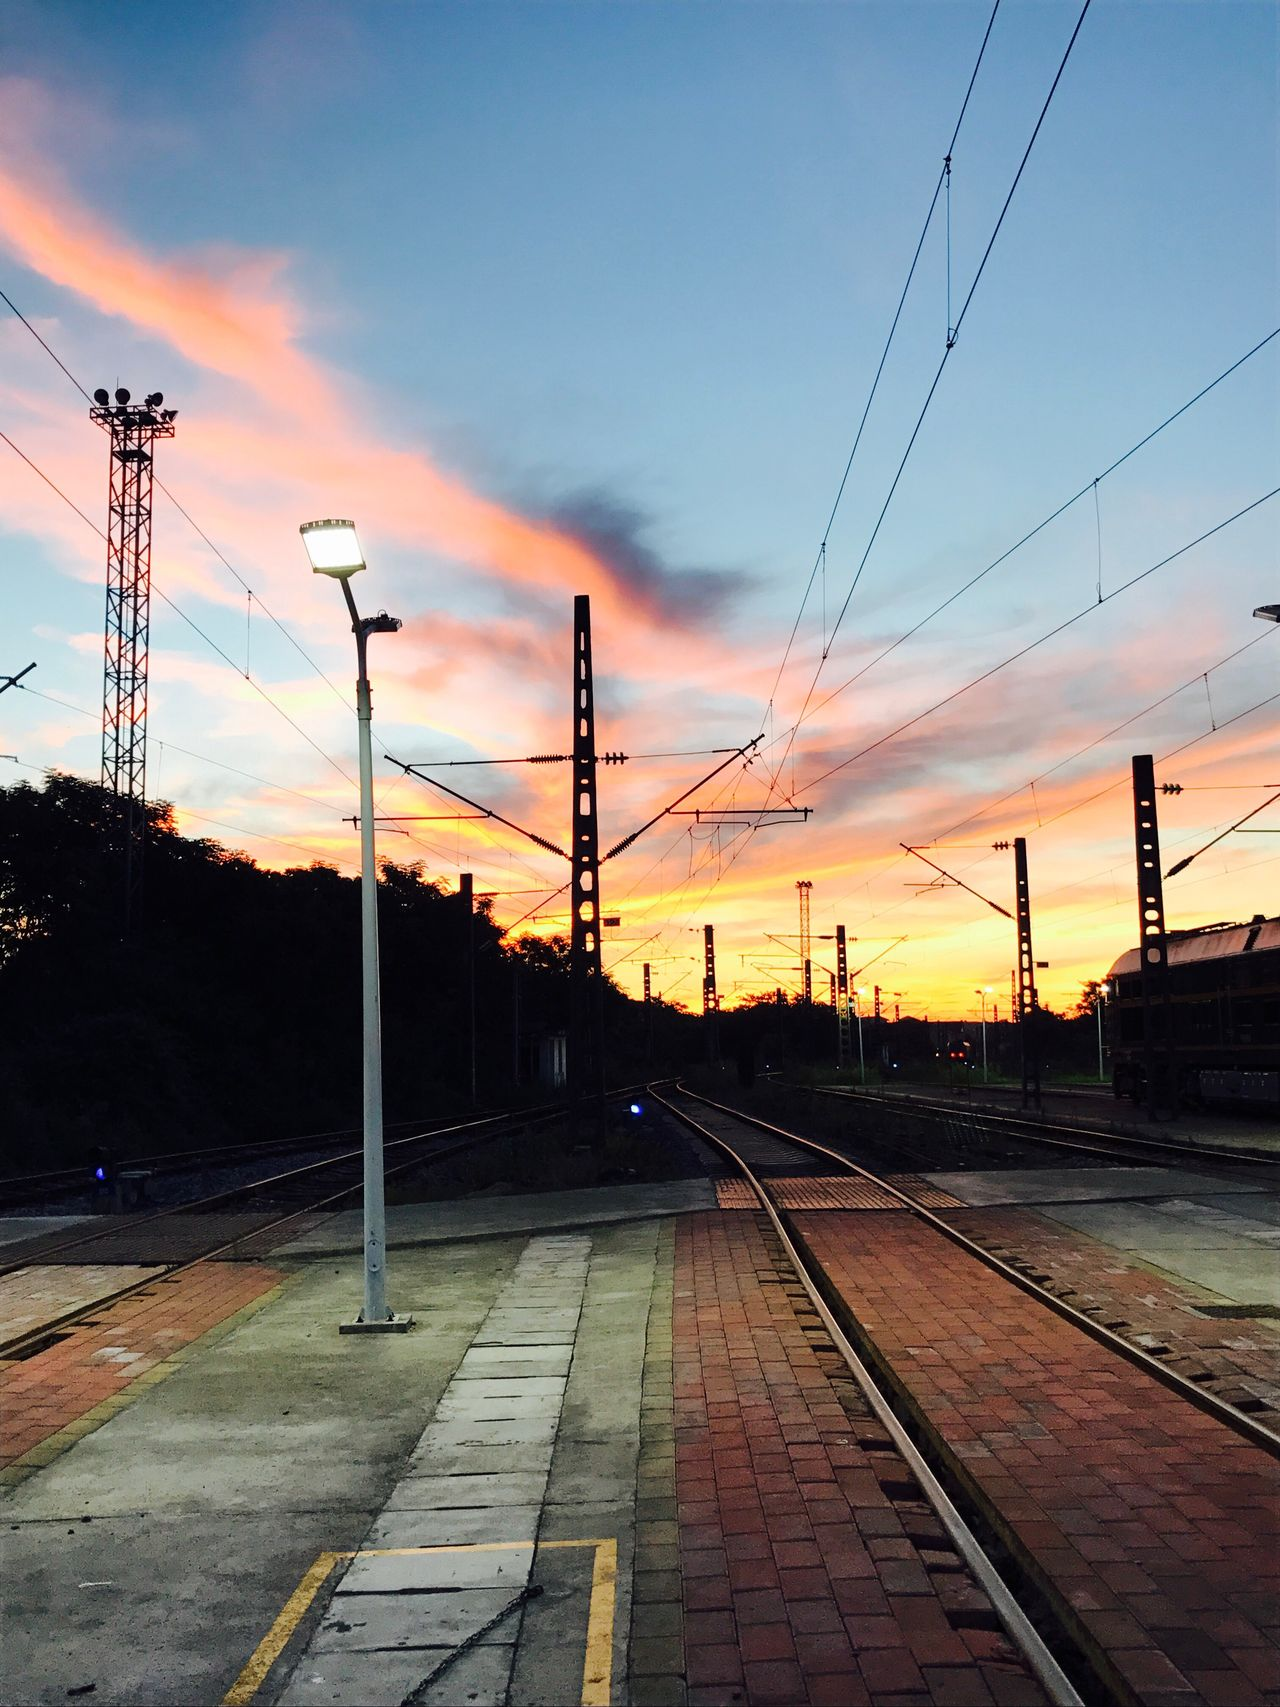 No ps!It is nature! Rail Transportation Railroad Track Cable Sky Transportation Power Line  Electricity Pylon Sunset No People Railway Signal Electricity  Power Supply Cloud - Sky Railway Track Railway Public Transportation Outdoors Railroad Technology Day